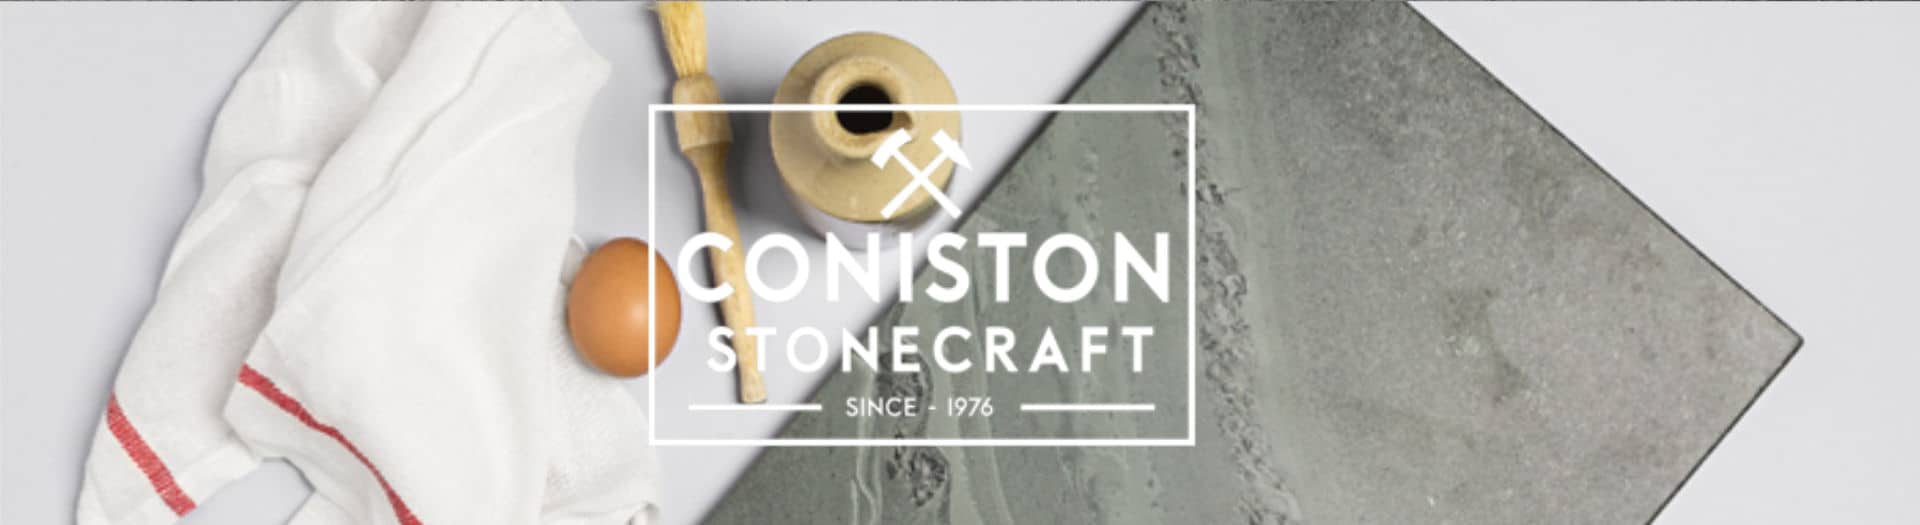 Coniston Stonecraft header